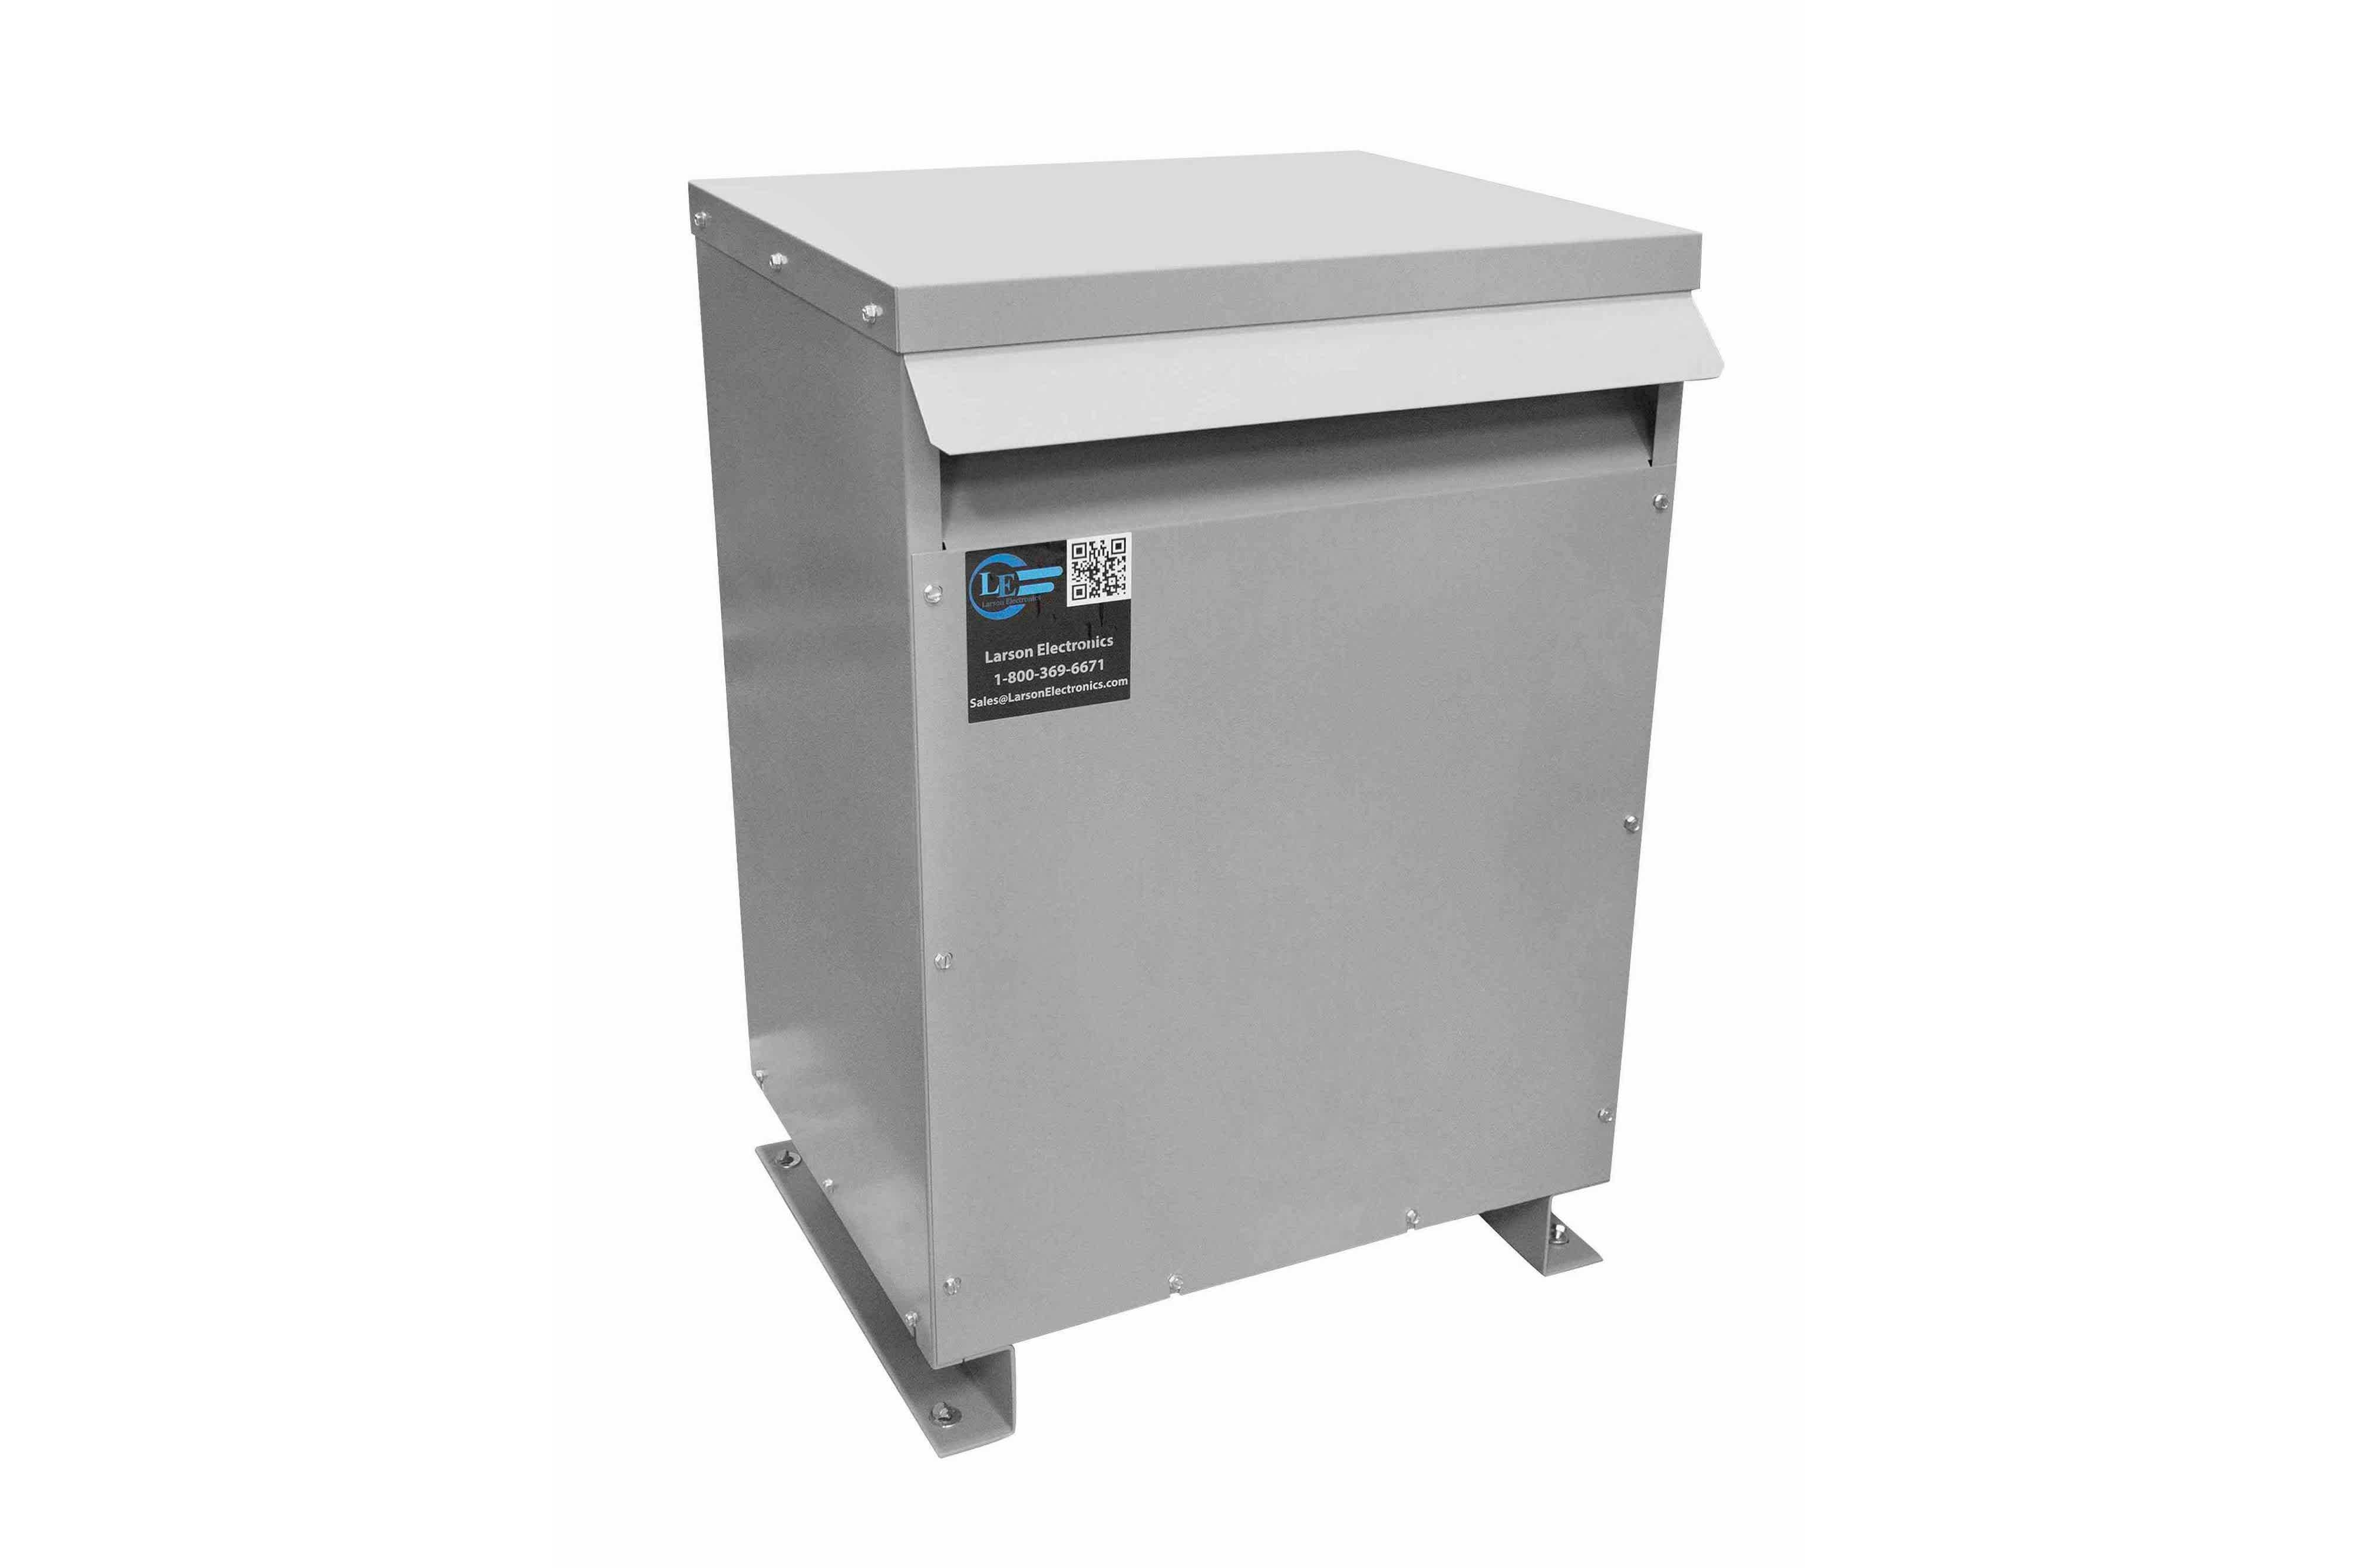 125 kVA 3PH Isolation Transformer, 380V Wye Primary, 208Y/120 Wye-N Secondary, N3R, Ventilated, 60 Hz